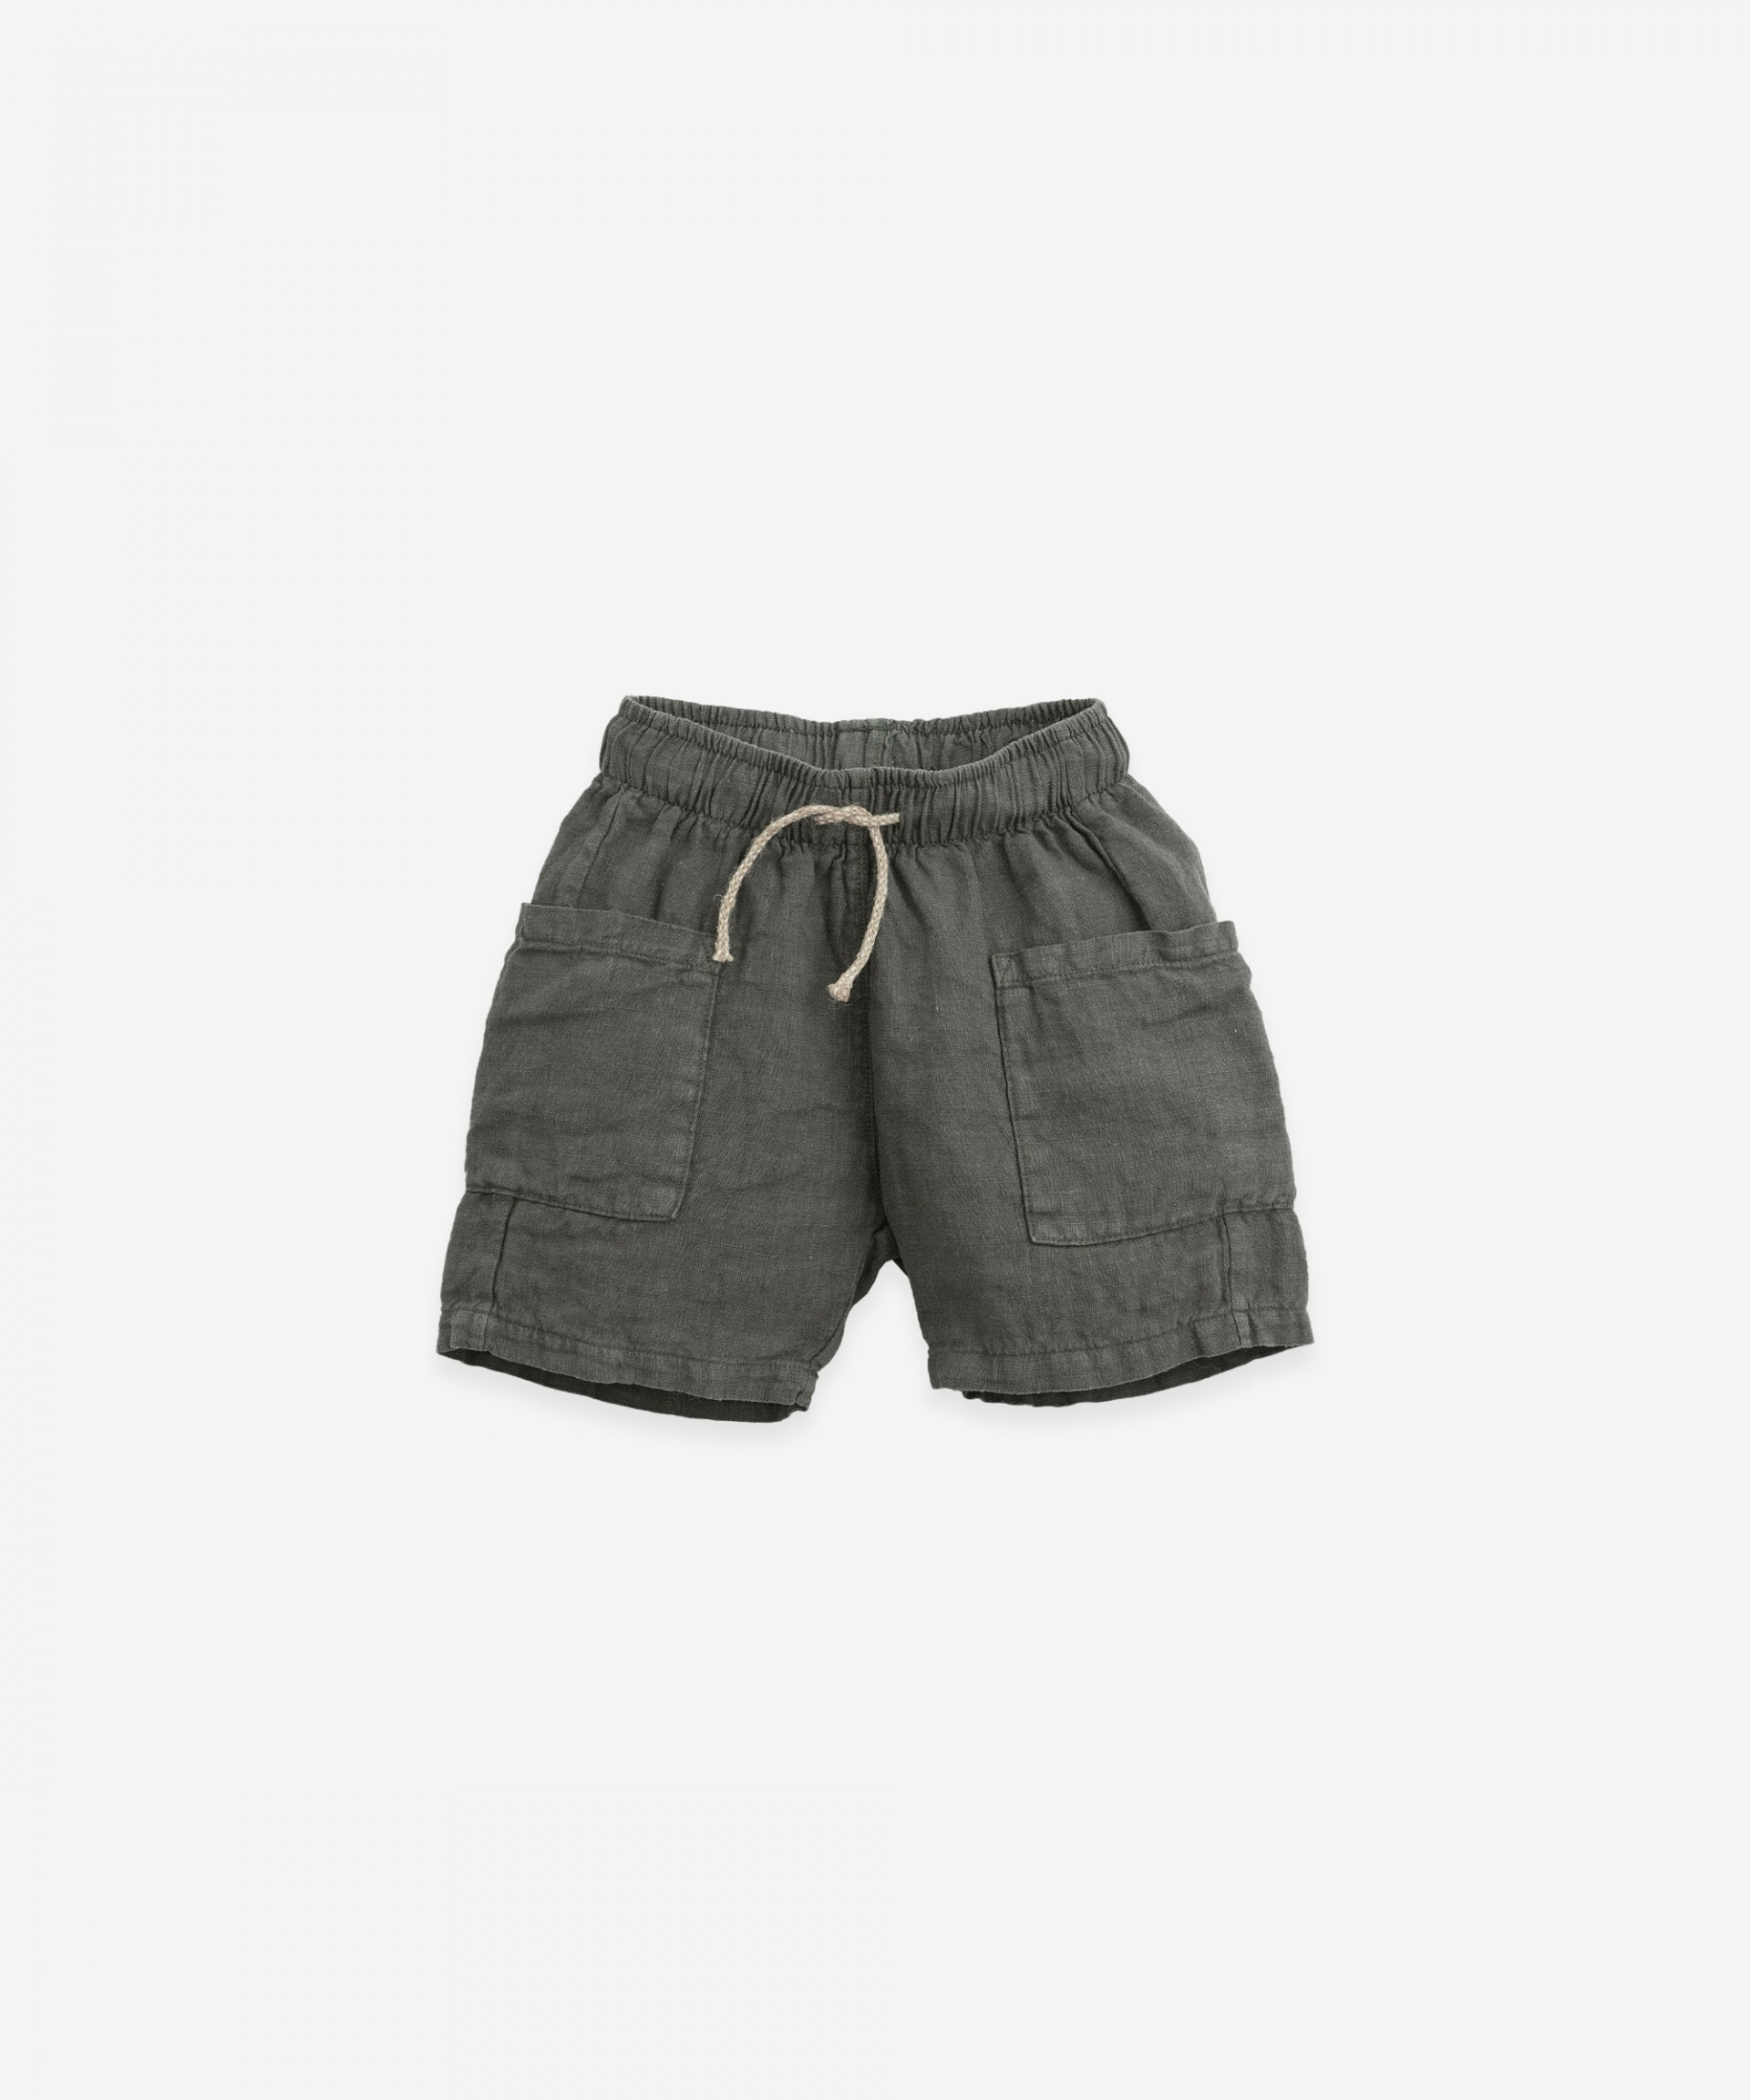 Linen shorts with large pockets | Botany